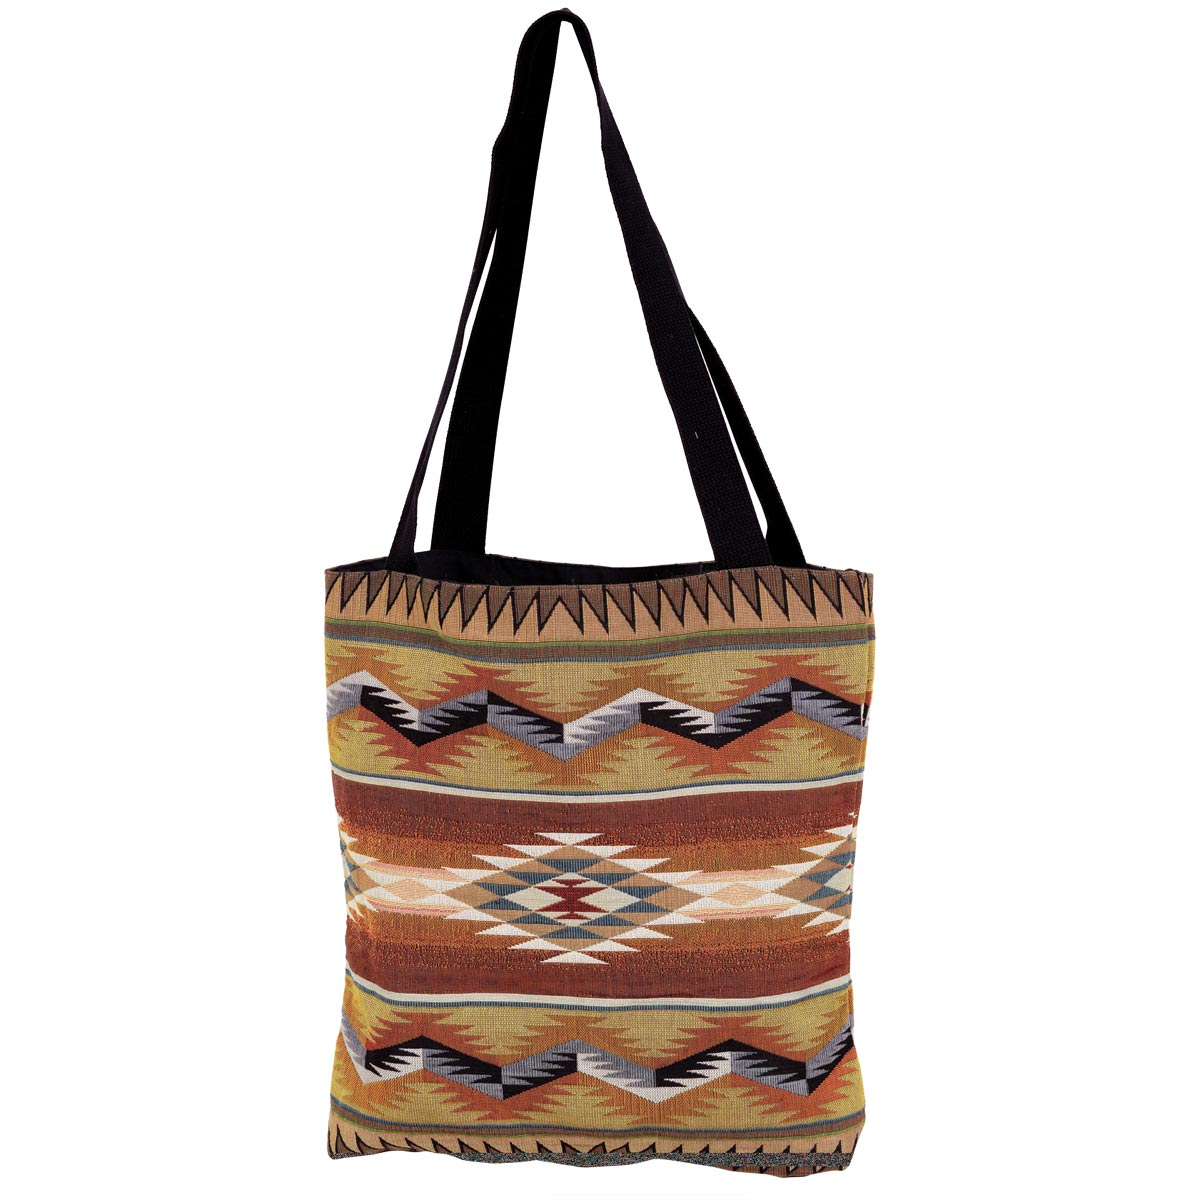 Southwest Geometric Flame Tote Bag